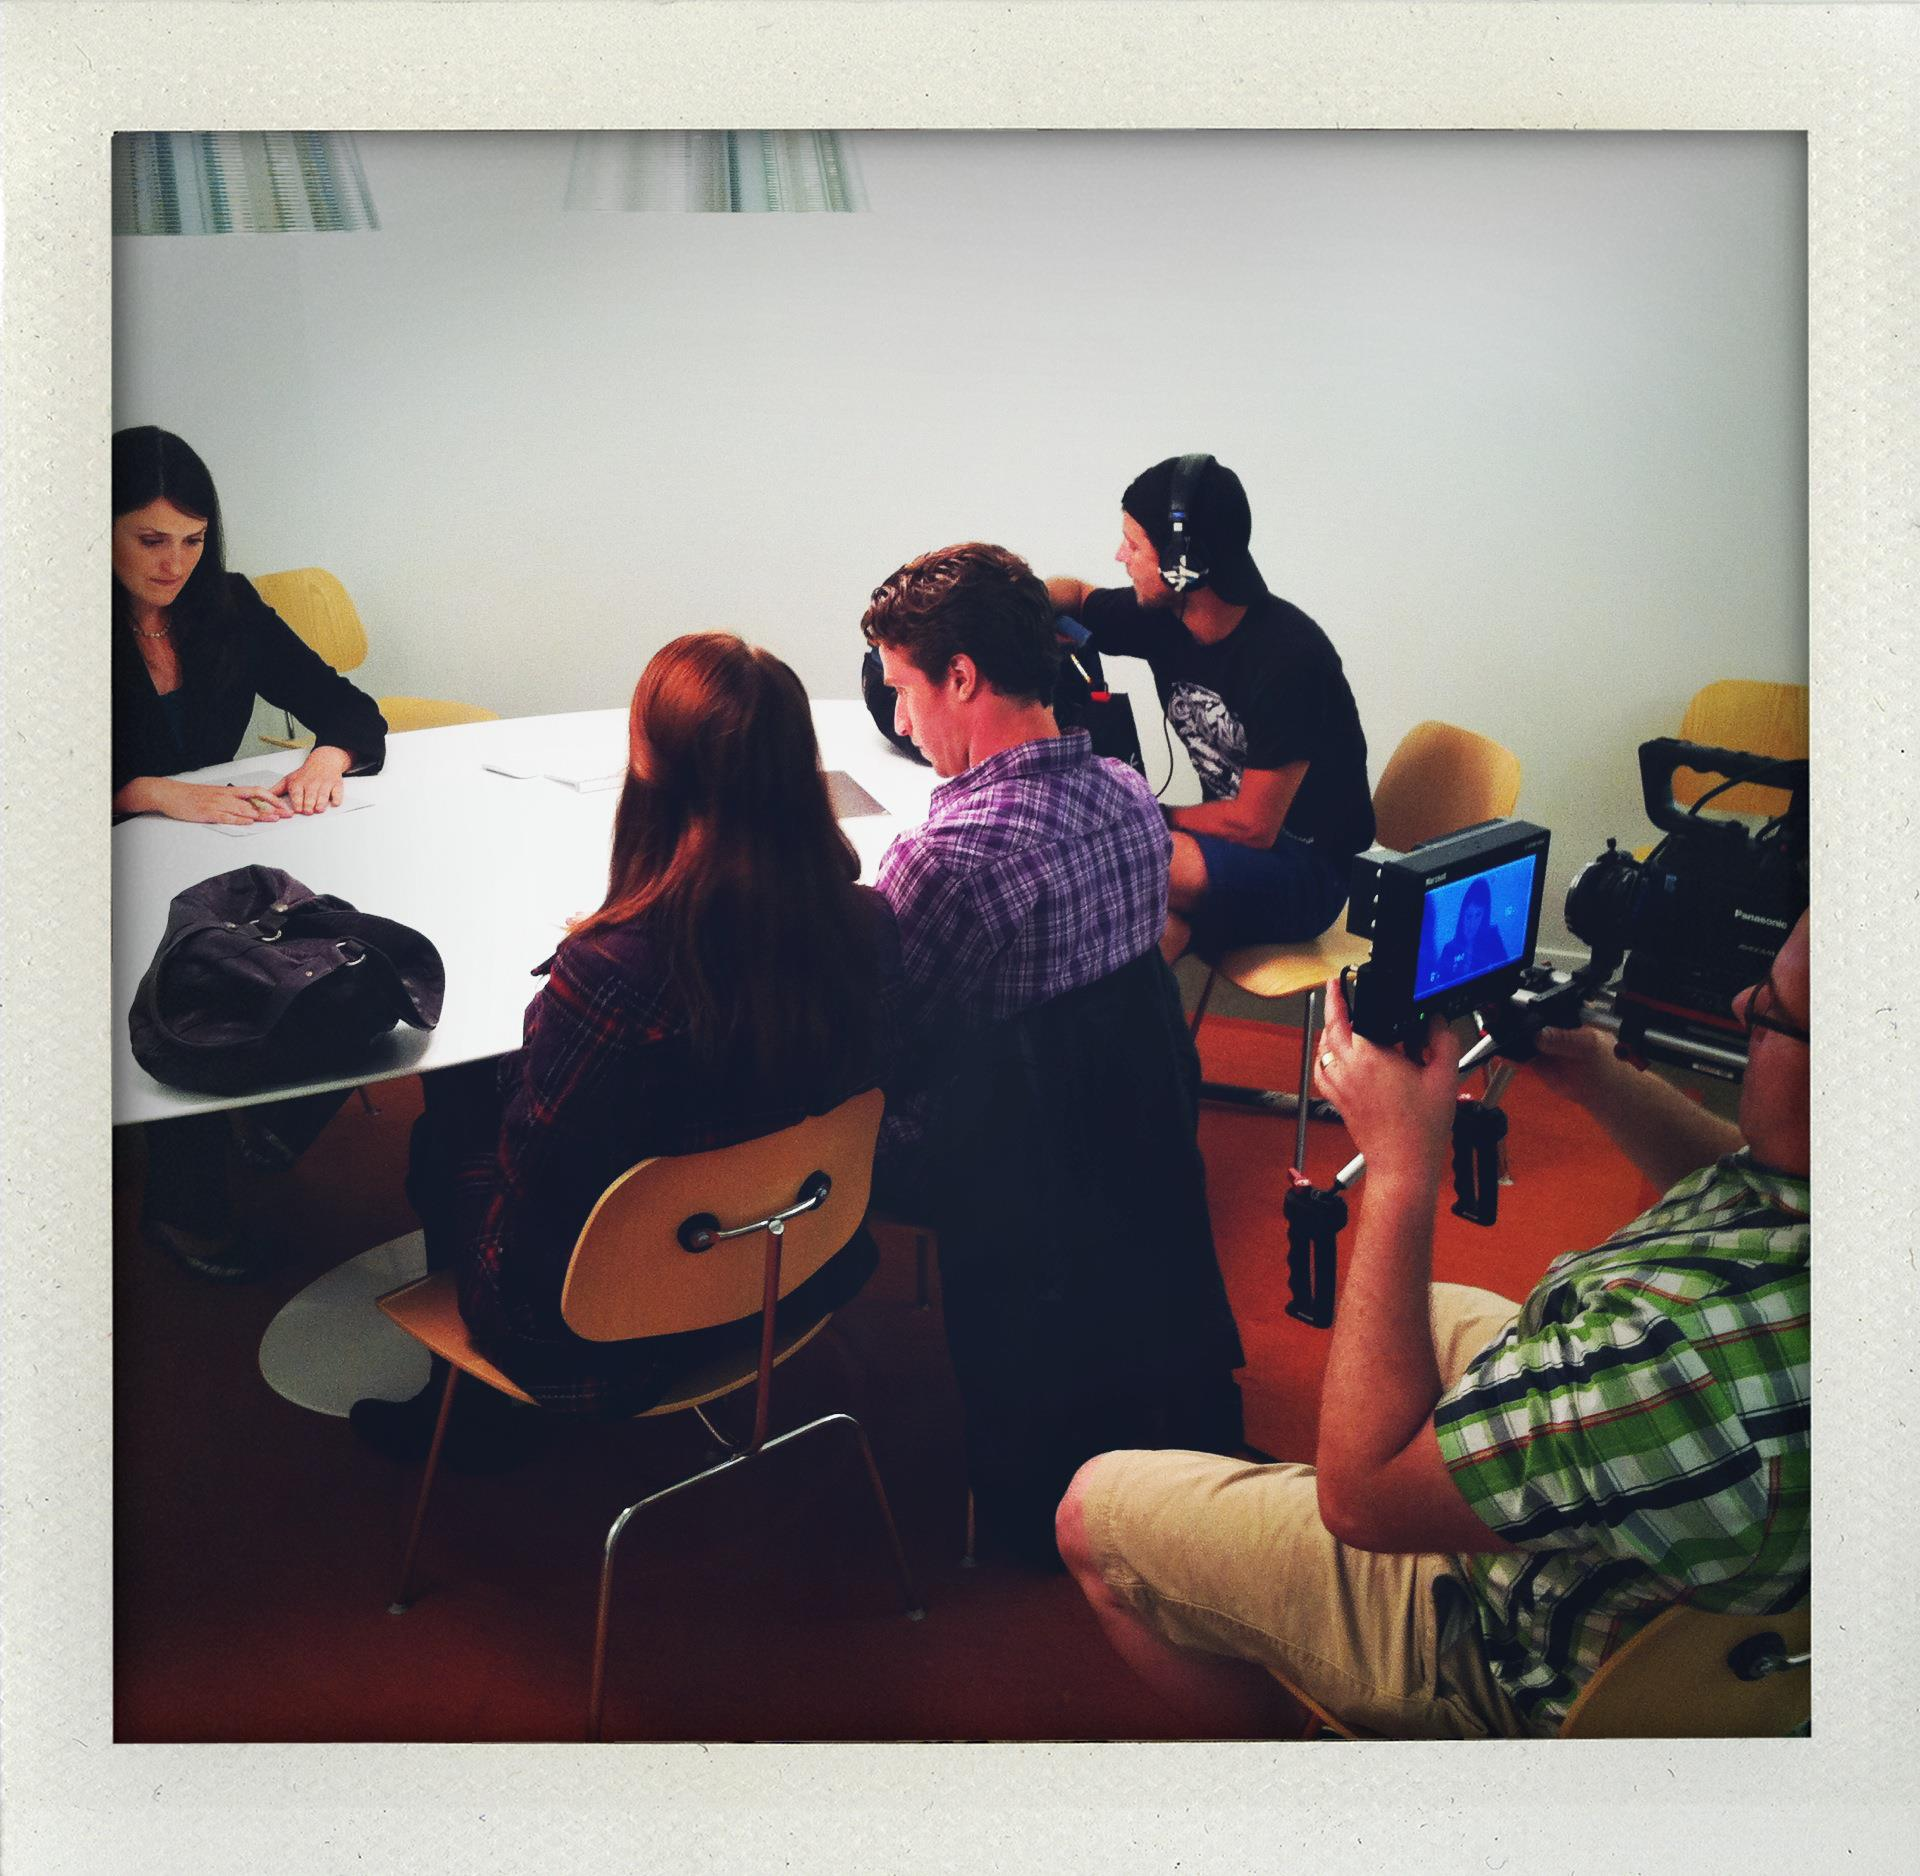 Shooting on location in NYC for our latest indie film 'Ready Or Not'